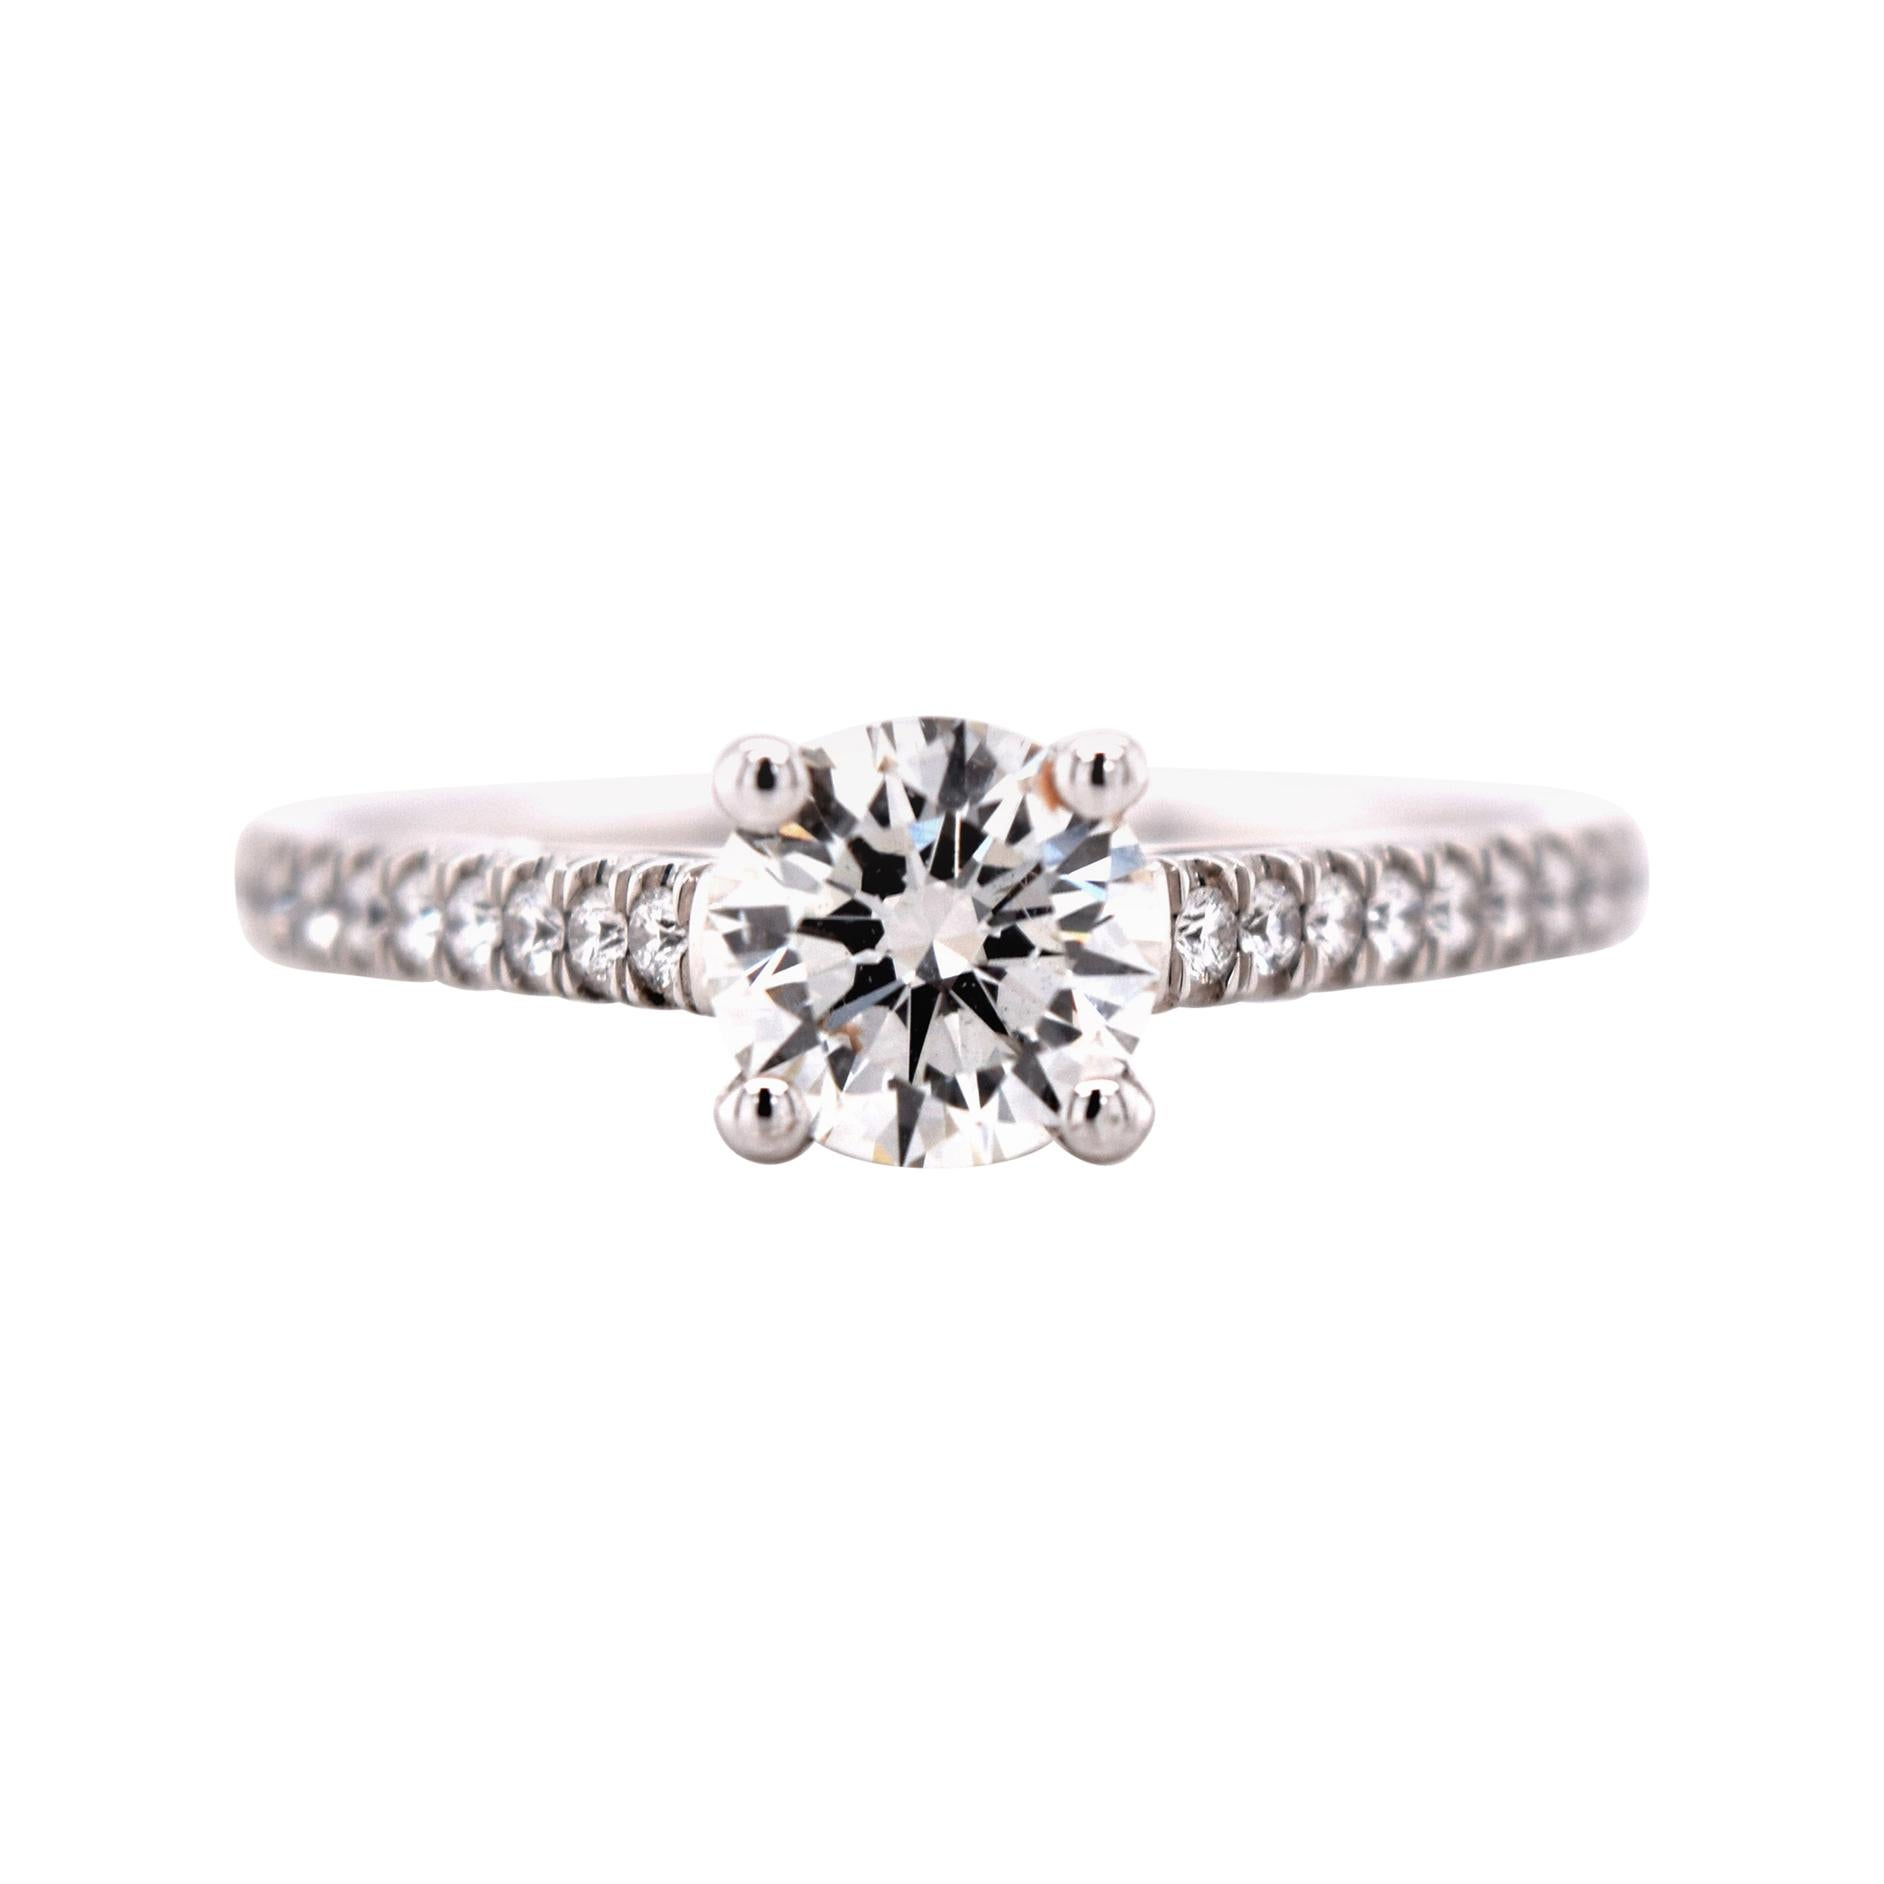 .76 Carat Diamond Solitaire Engagement Ring with Diamonds on the Shank